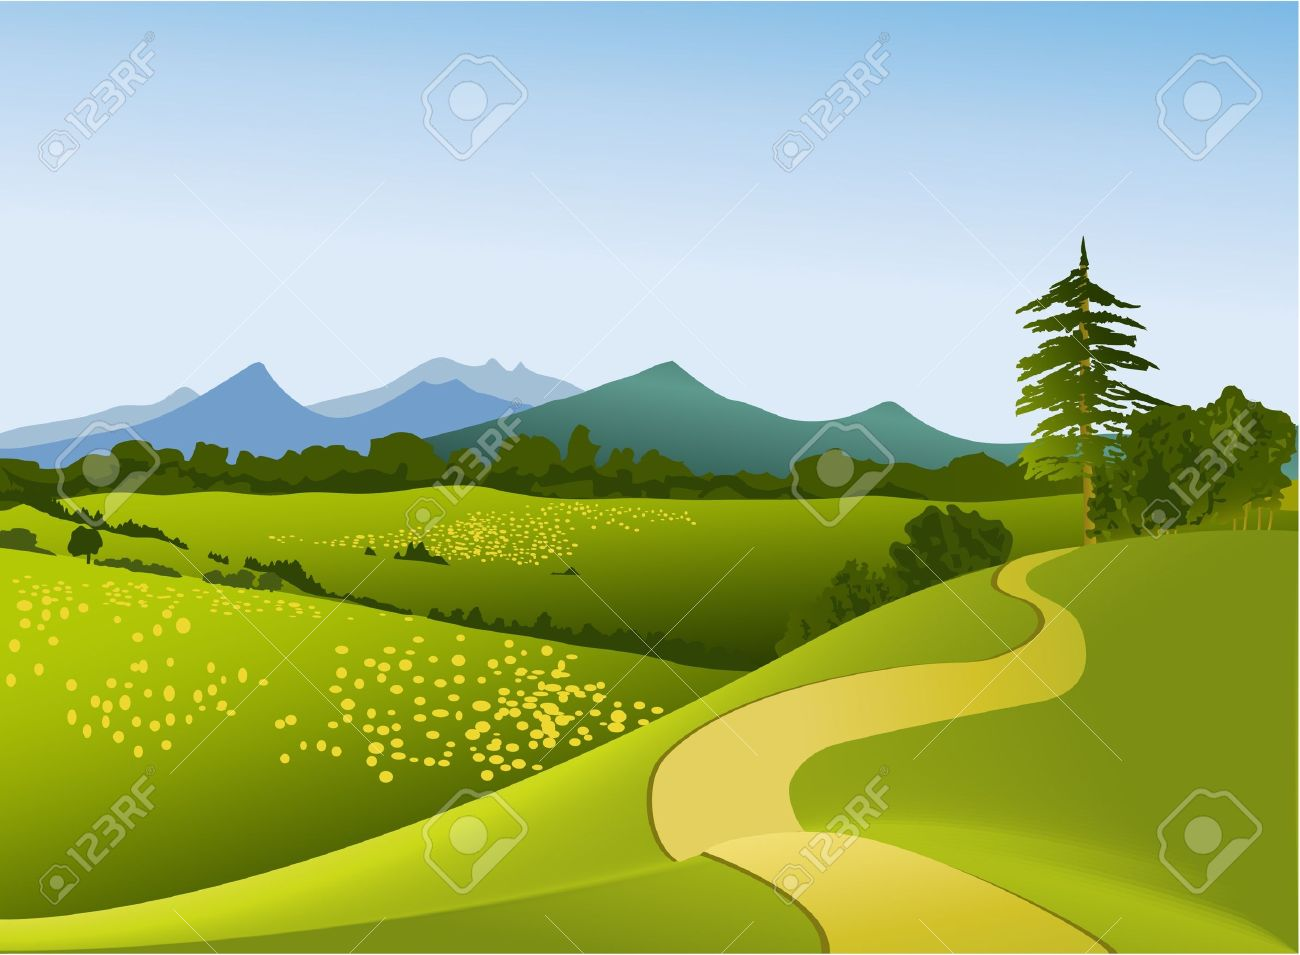 Mountain landscape with road - 14477234